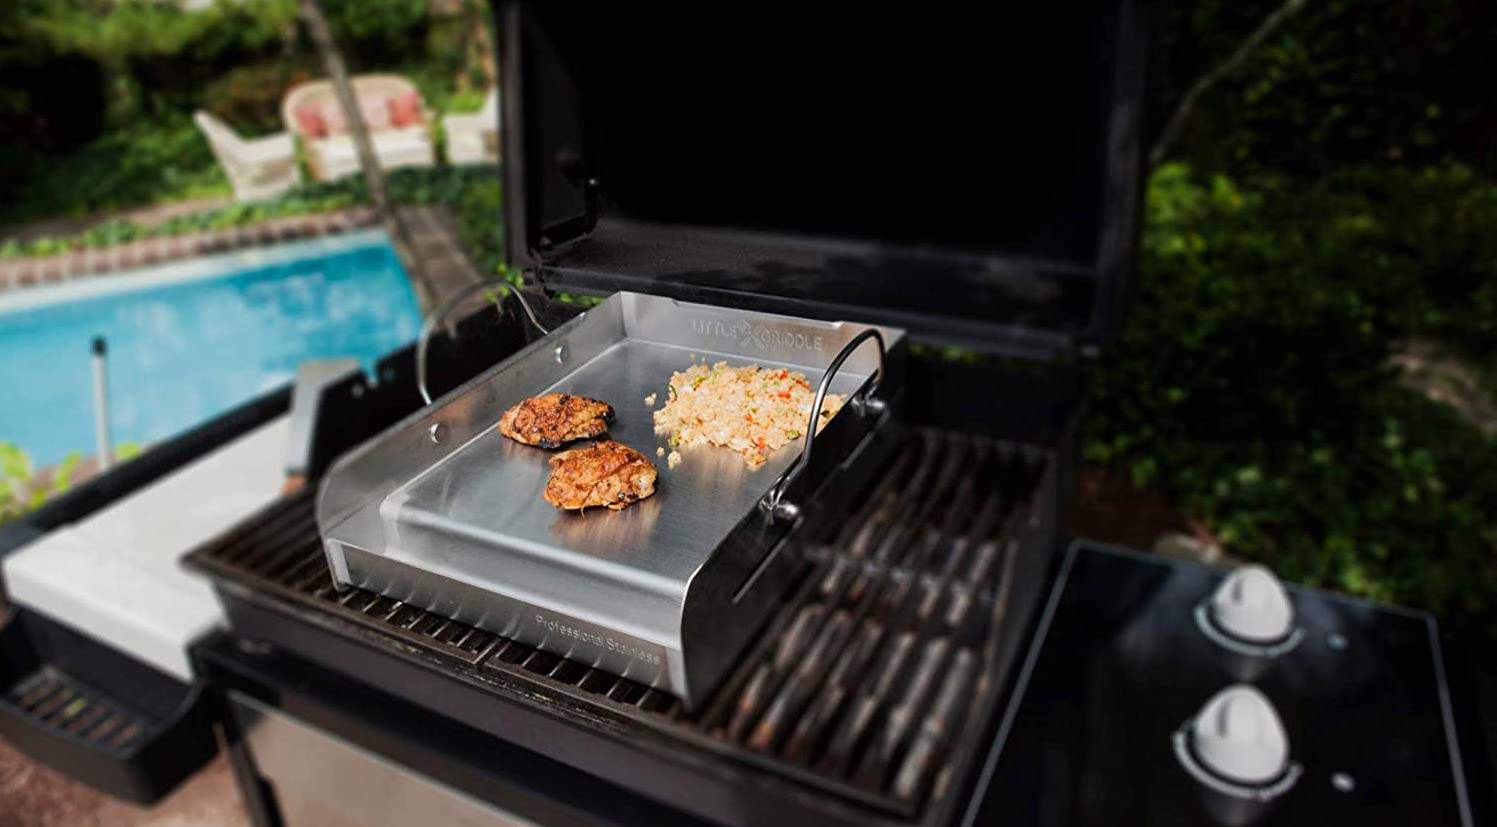 Best griddle for your existing grill- Little Griddle Sizzle-Q SQ180 on the grill